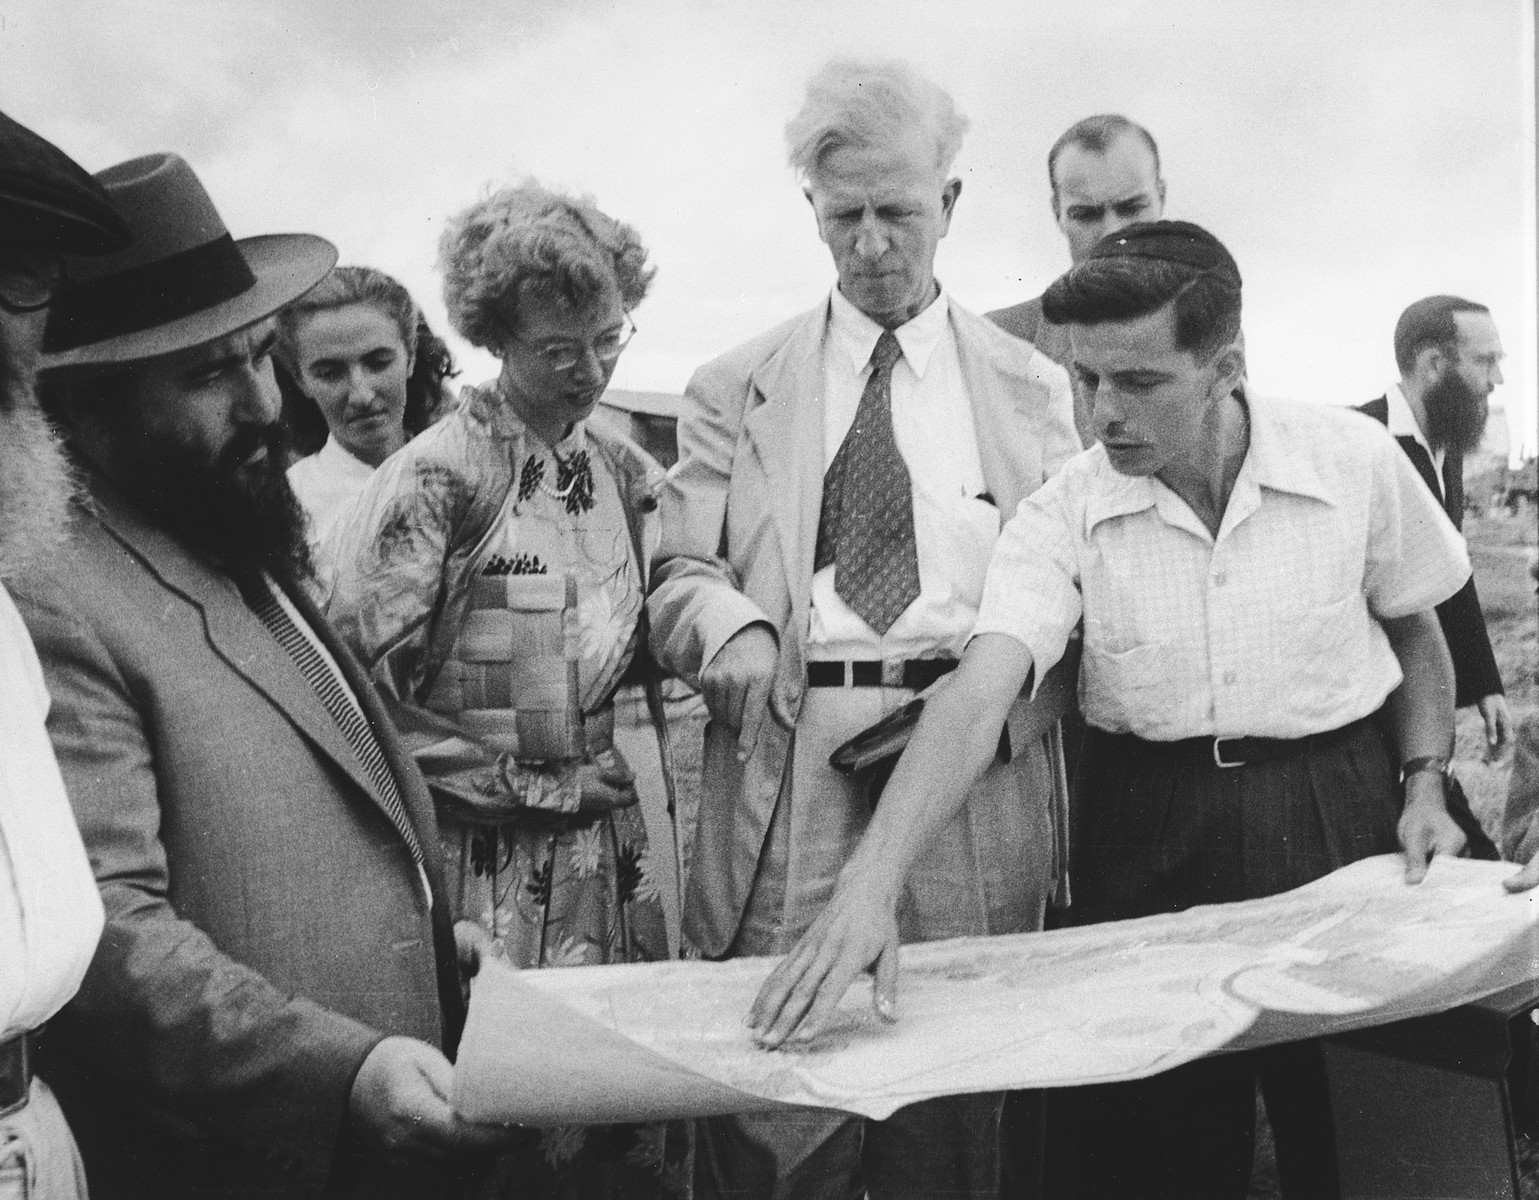 Ambassador James Grover McDonald and his daughter Barbara examine a building plan in a religious settlement in Israel.